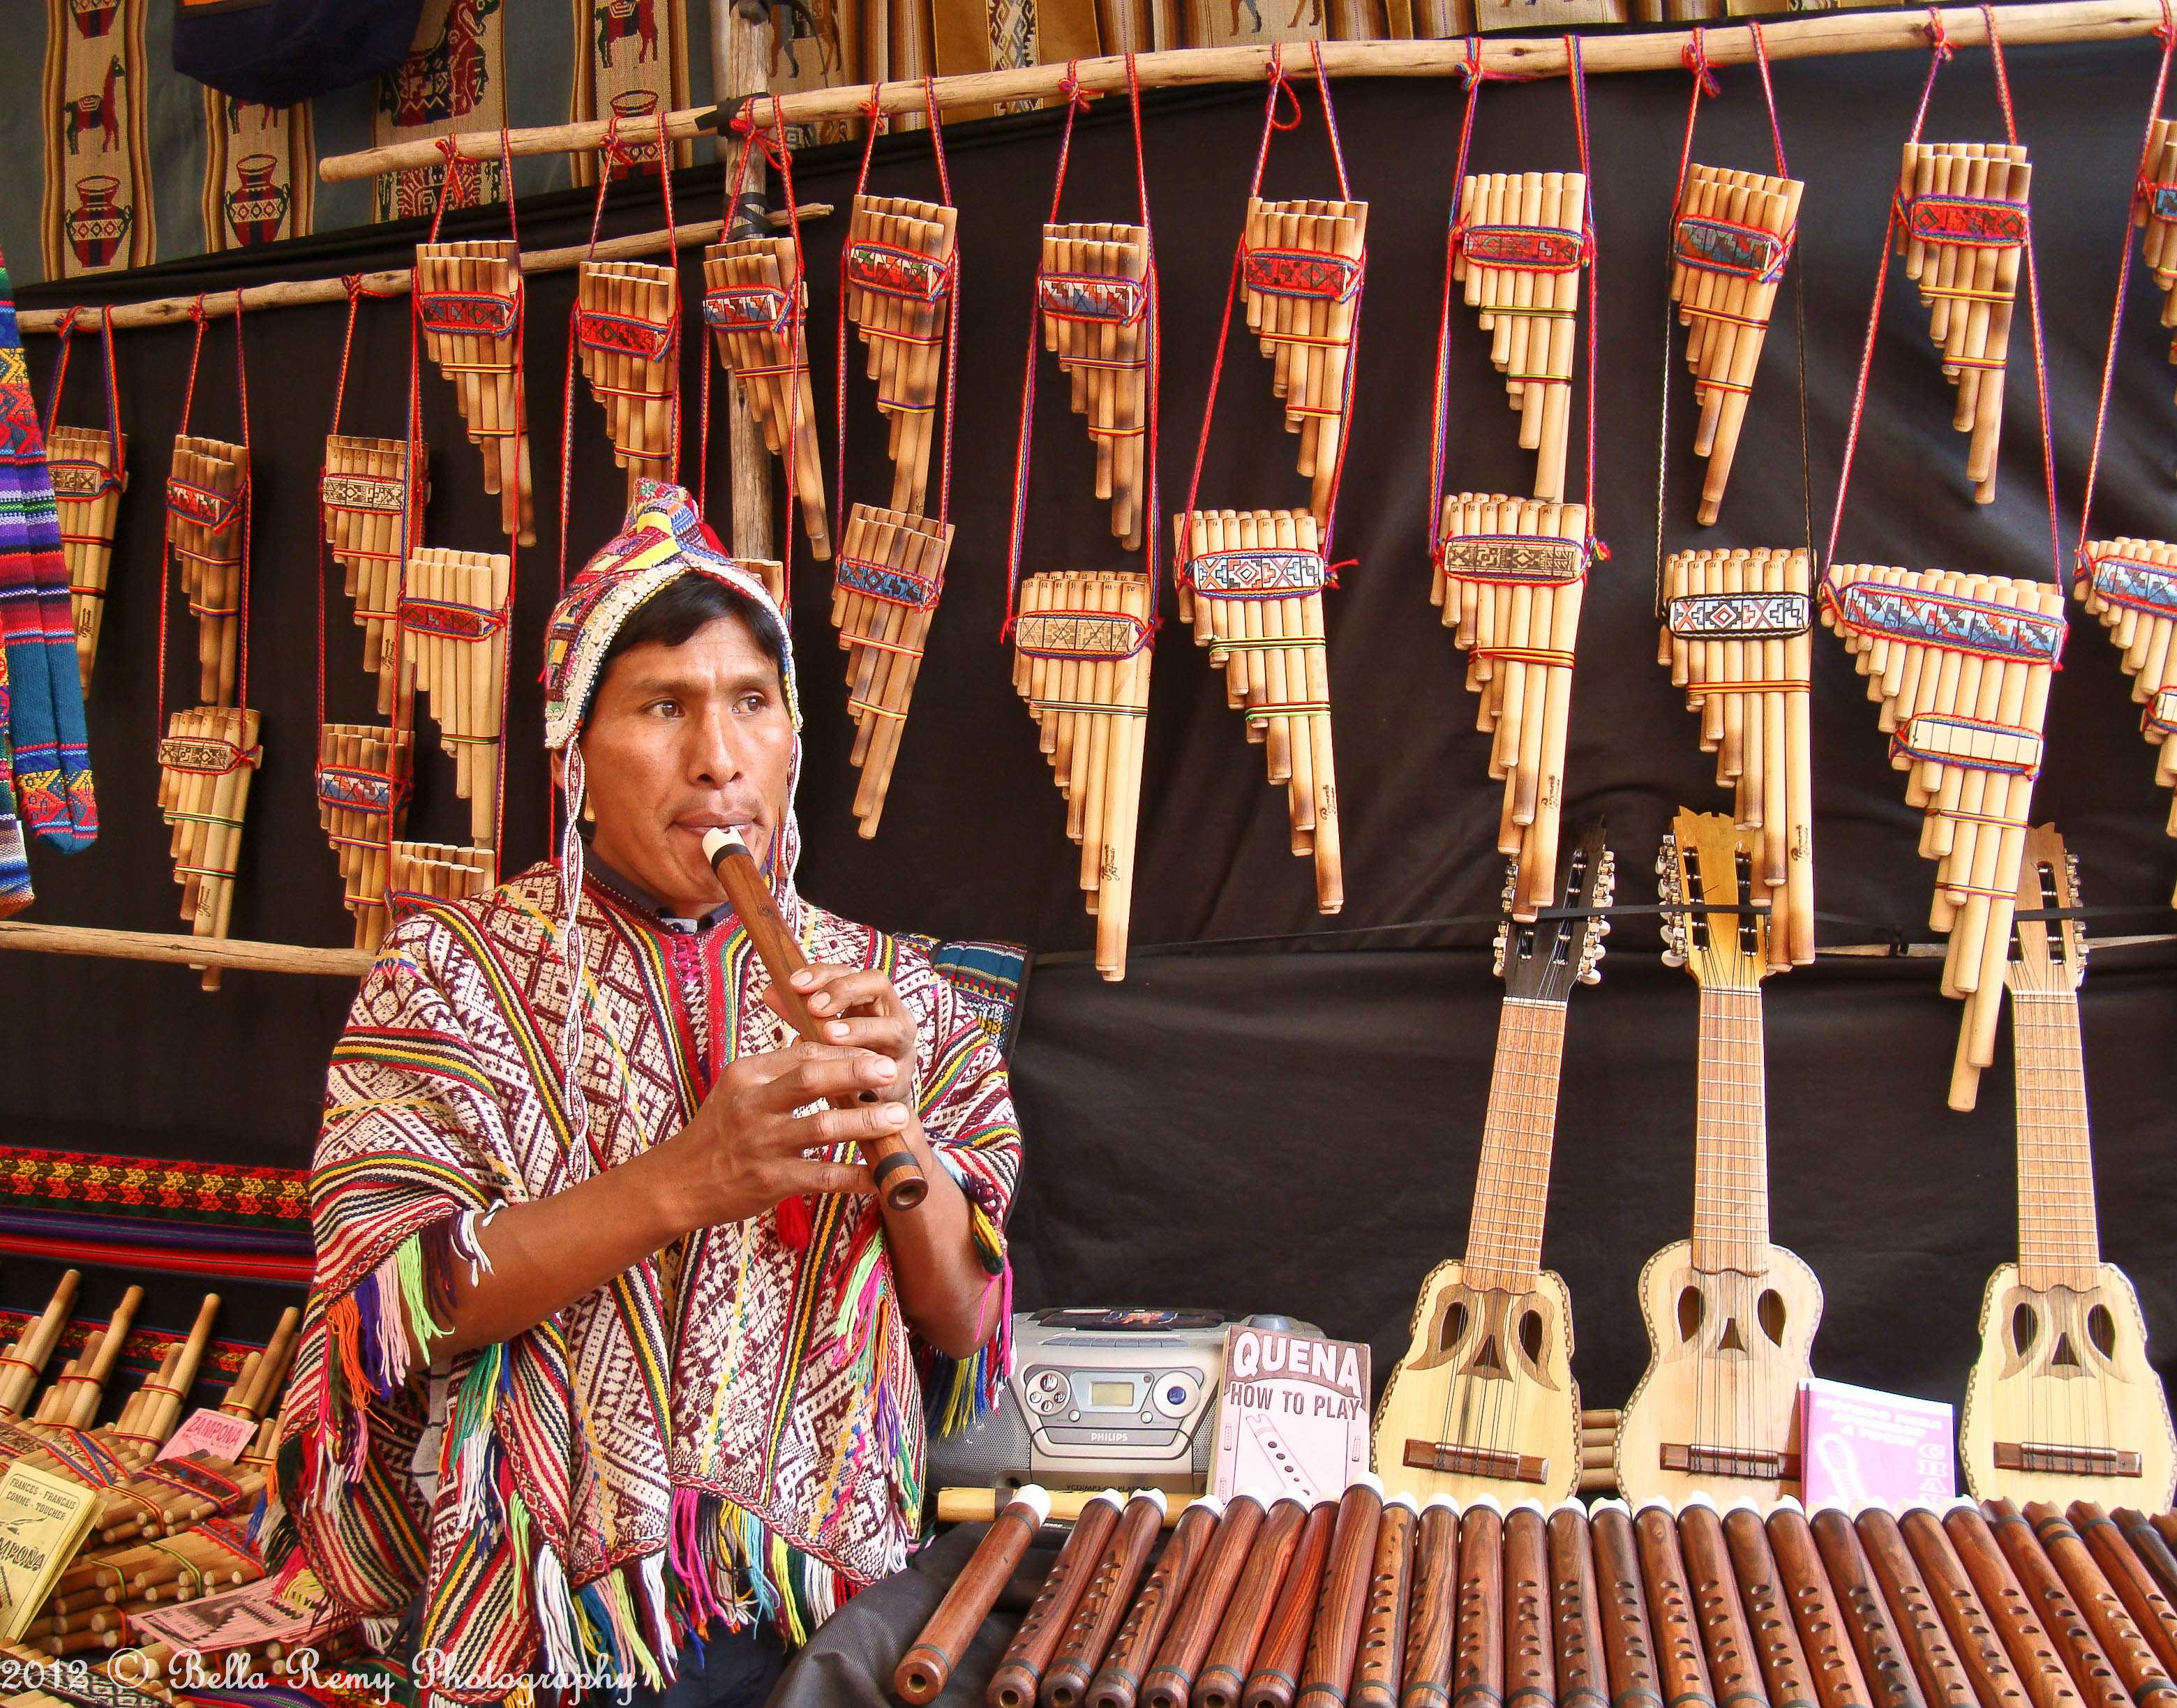 life in the peruvian society The rich marine plant life off the peruvian coast attracts a wealth of sociocultural distinctions based on ethnic background were endemic to peruvian society.